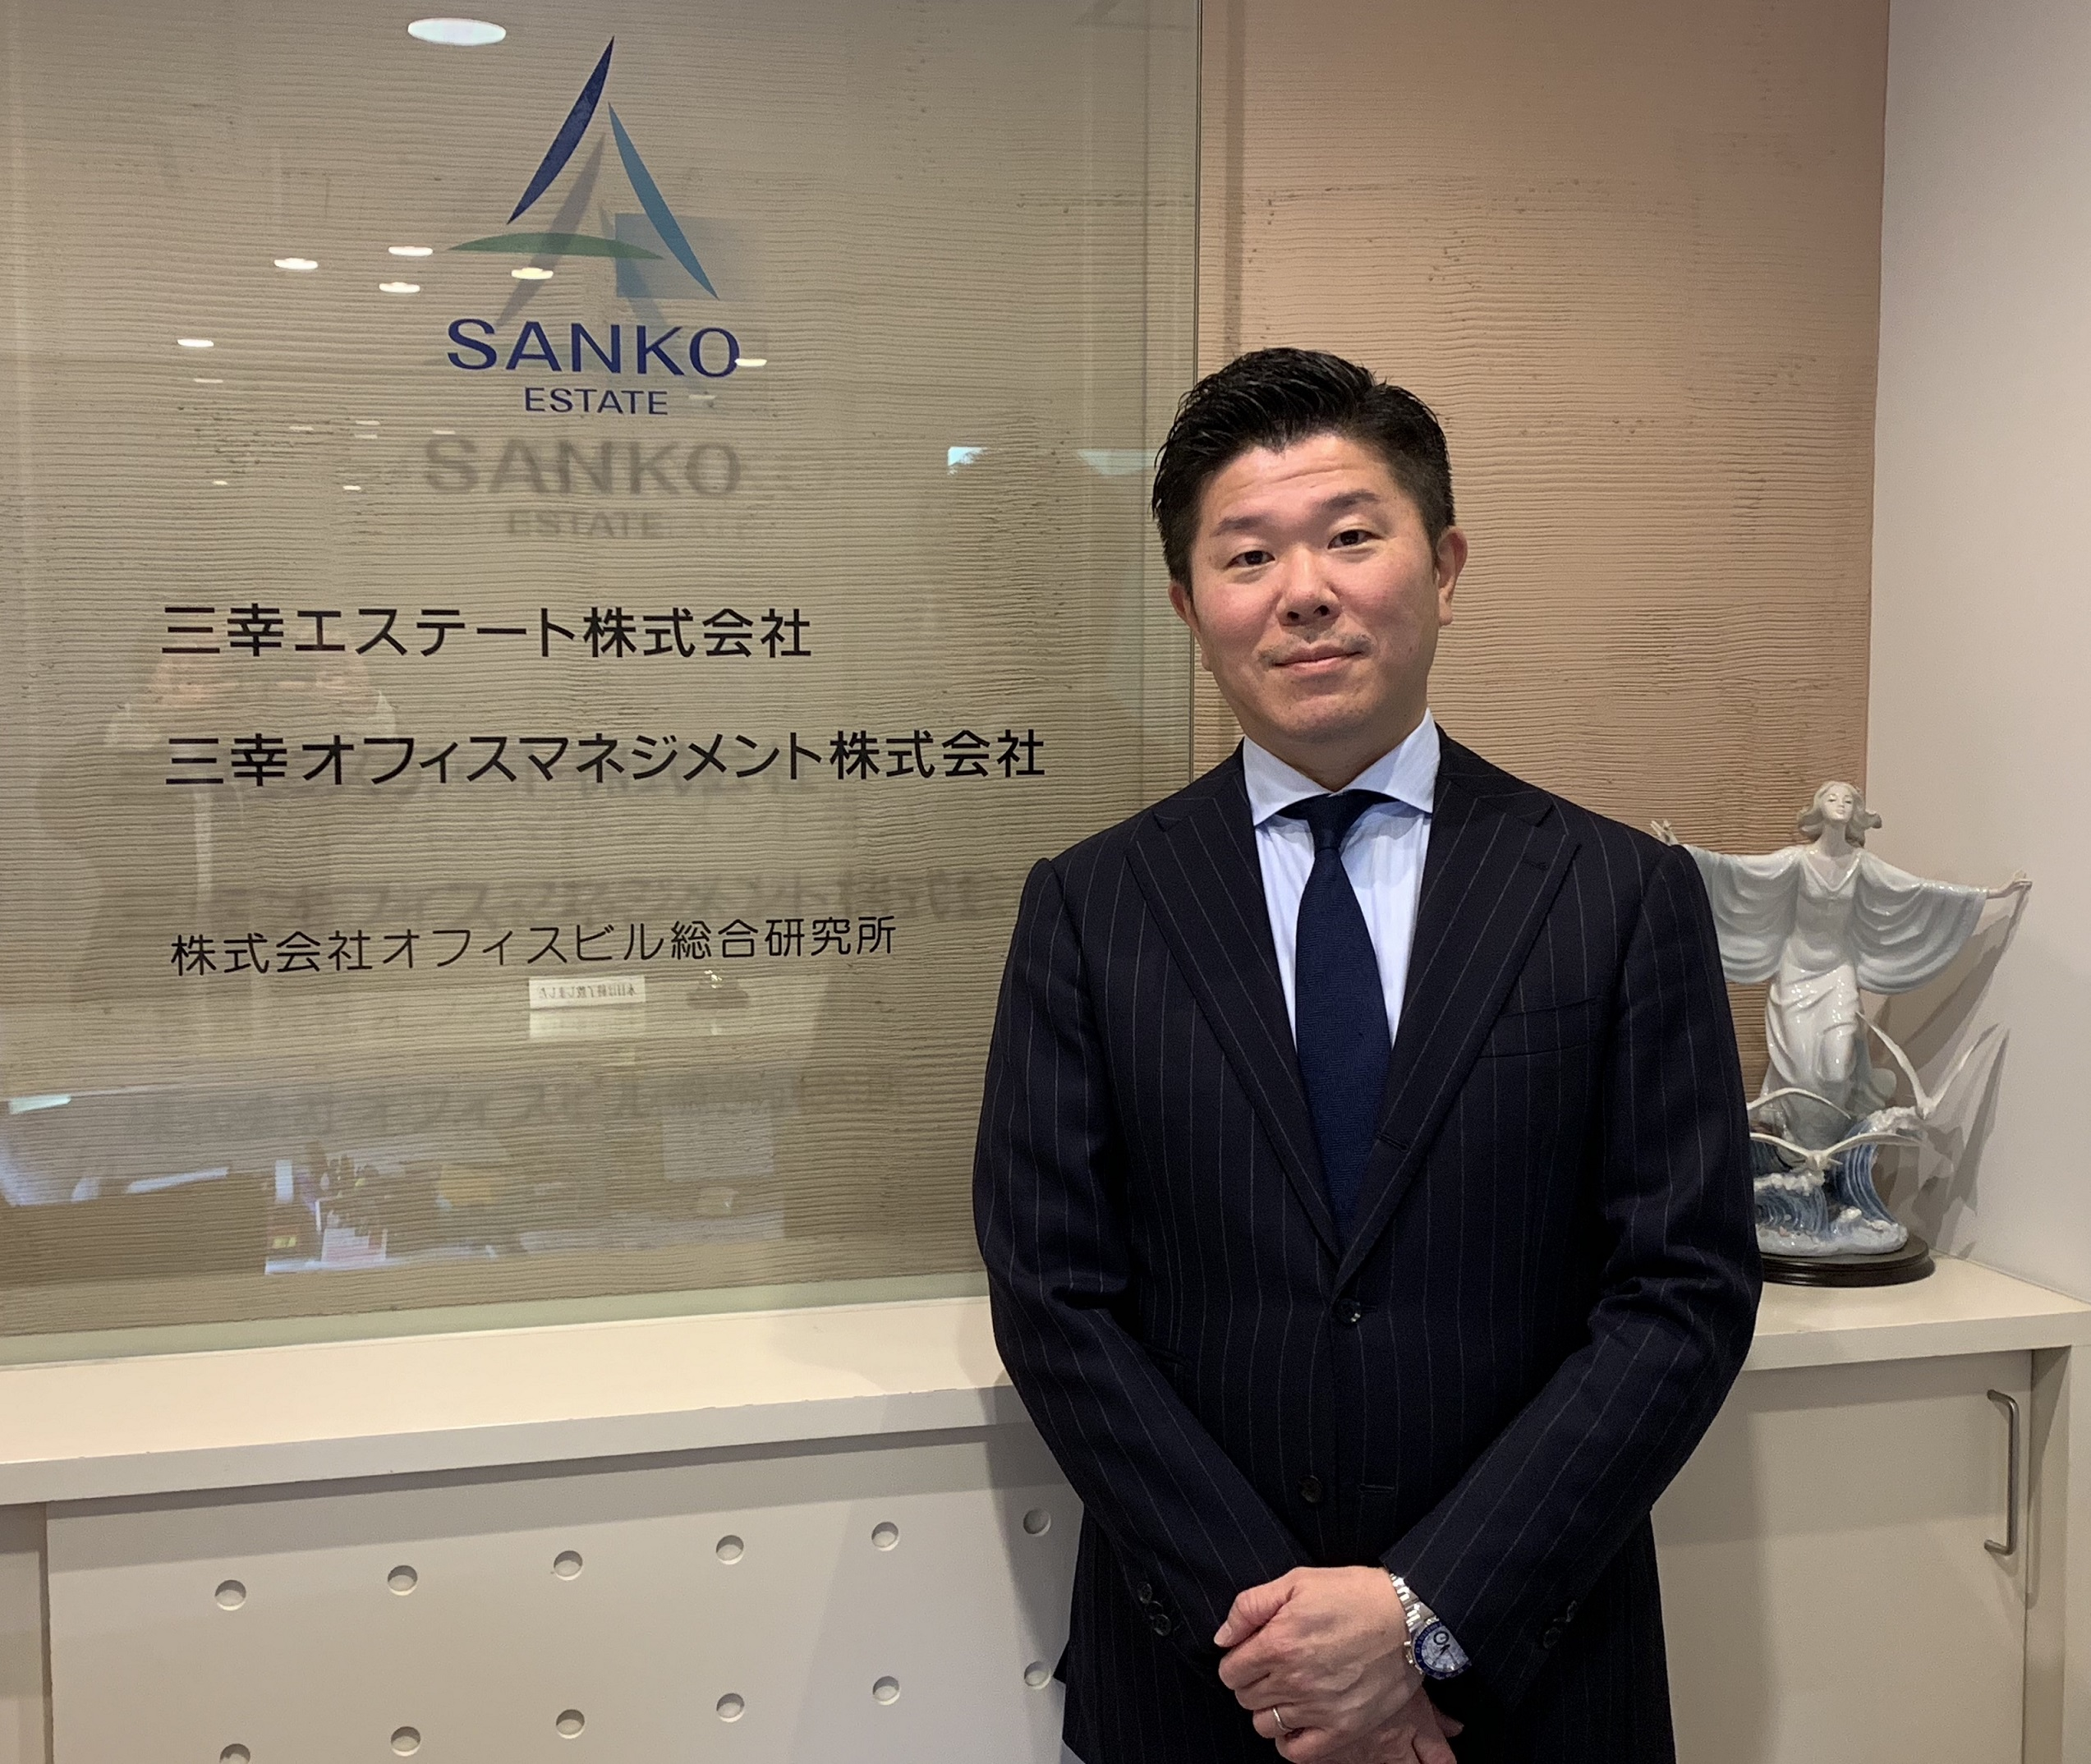 Member Introduction Sanko Estate: A Lodestar in Japan's Office Leasing Market